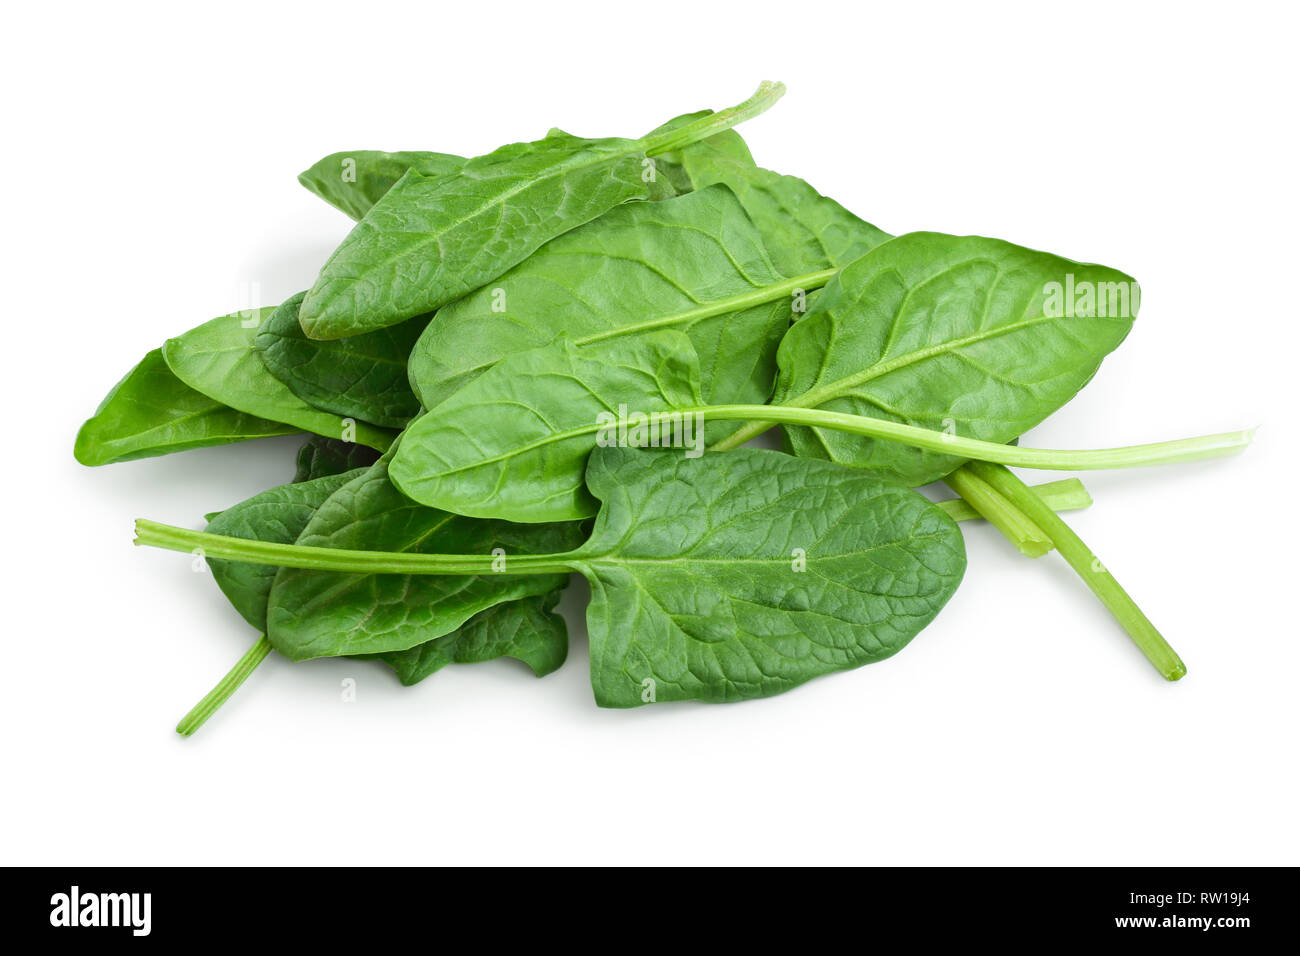 Spinach Plant Cut Out Stock Images & Pictures - Alamy